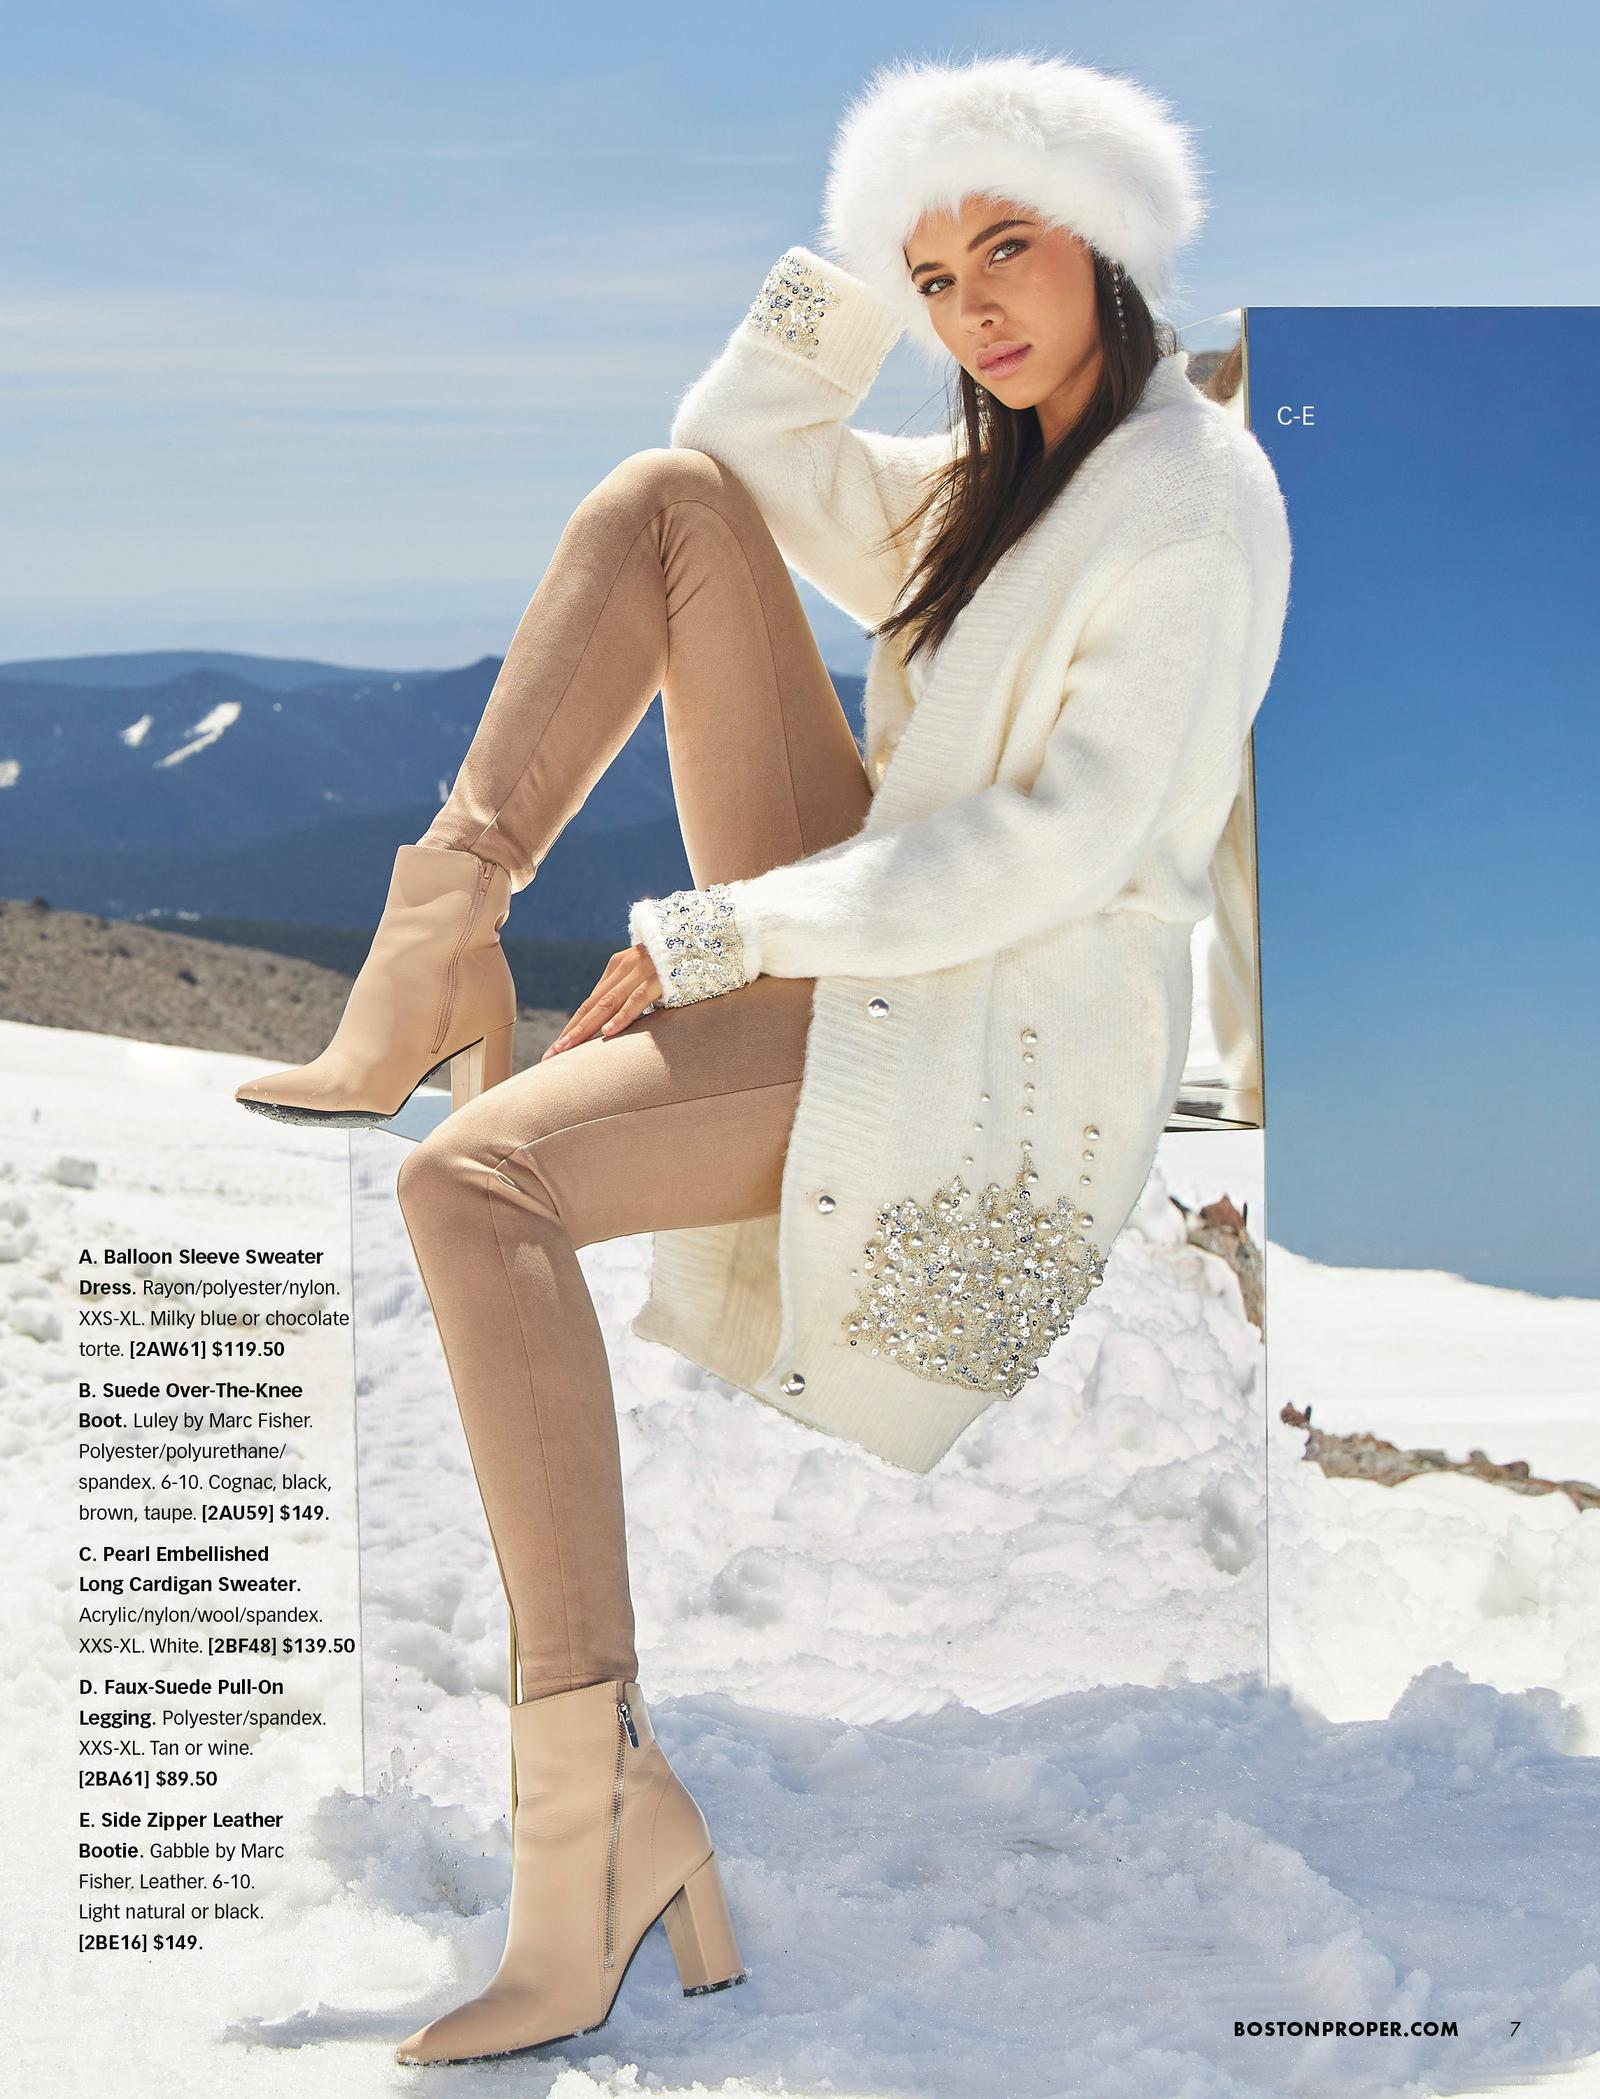 model wearing a white faux fur hat, white plush cardigan with pearl embellishments, tan suede leggings, and tan booties.